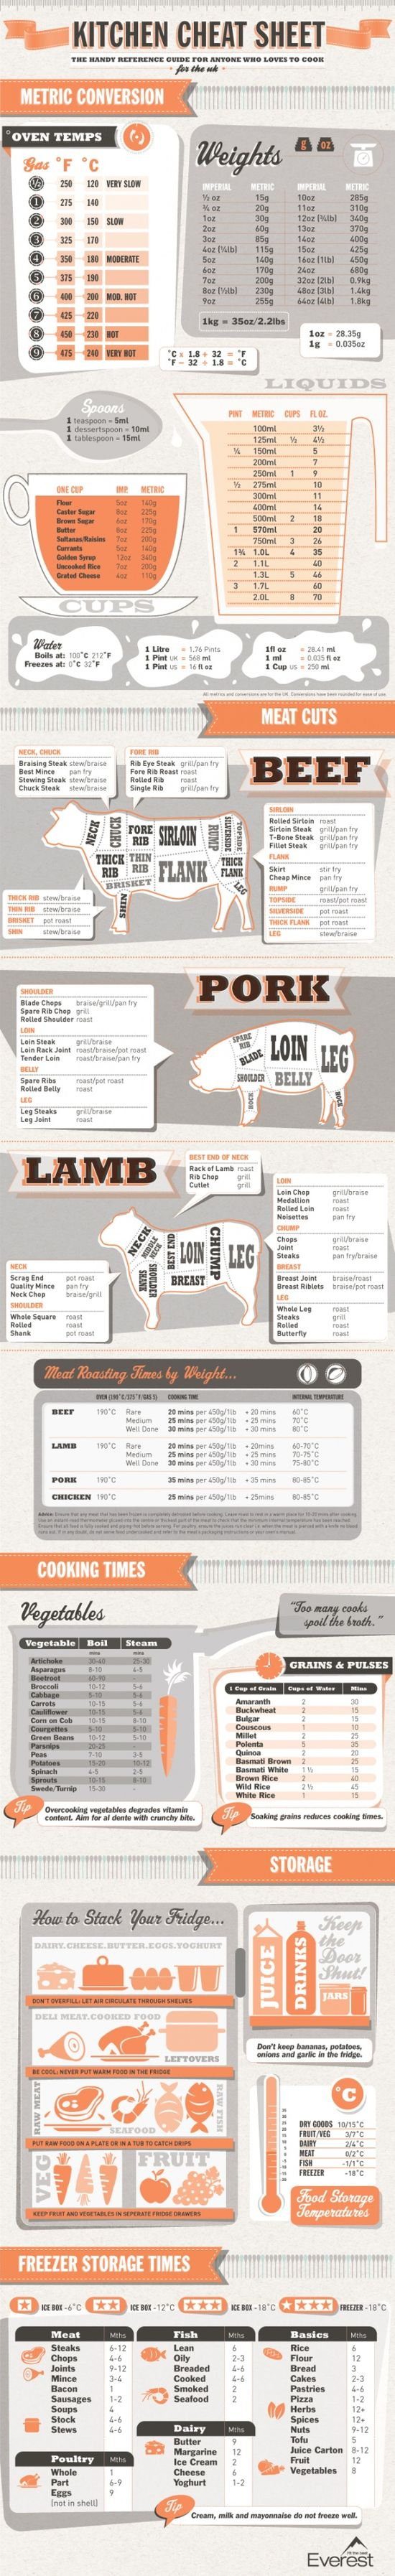 DIY:  Kitchen Cheat Sheet - this is a great reference to post in the kitchen!